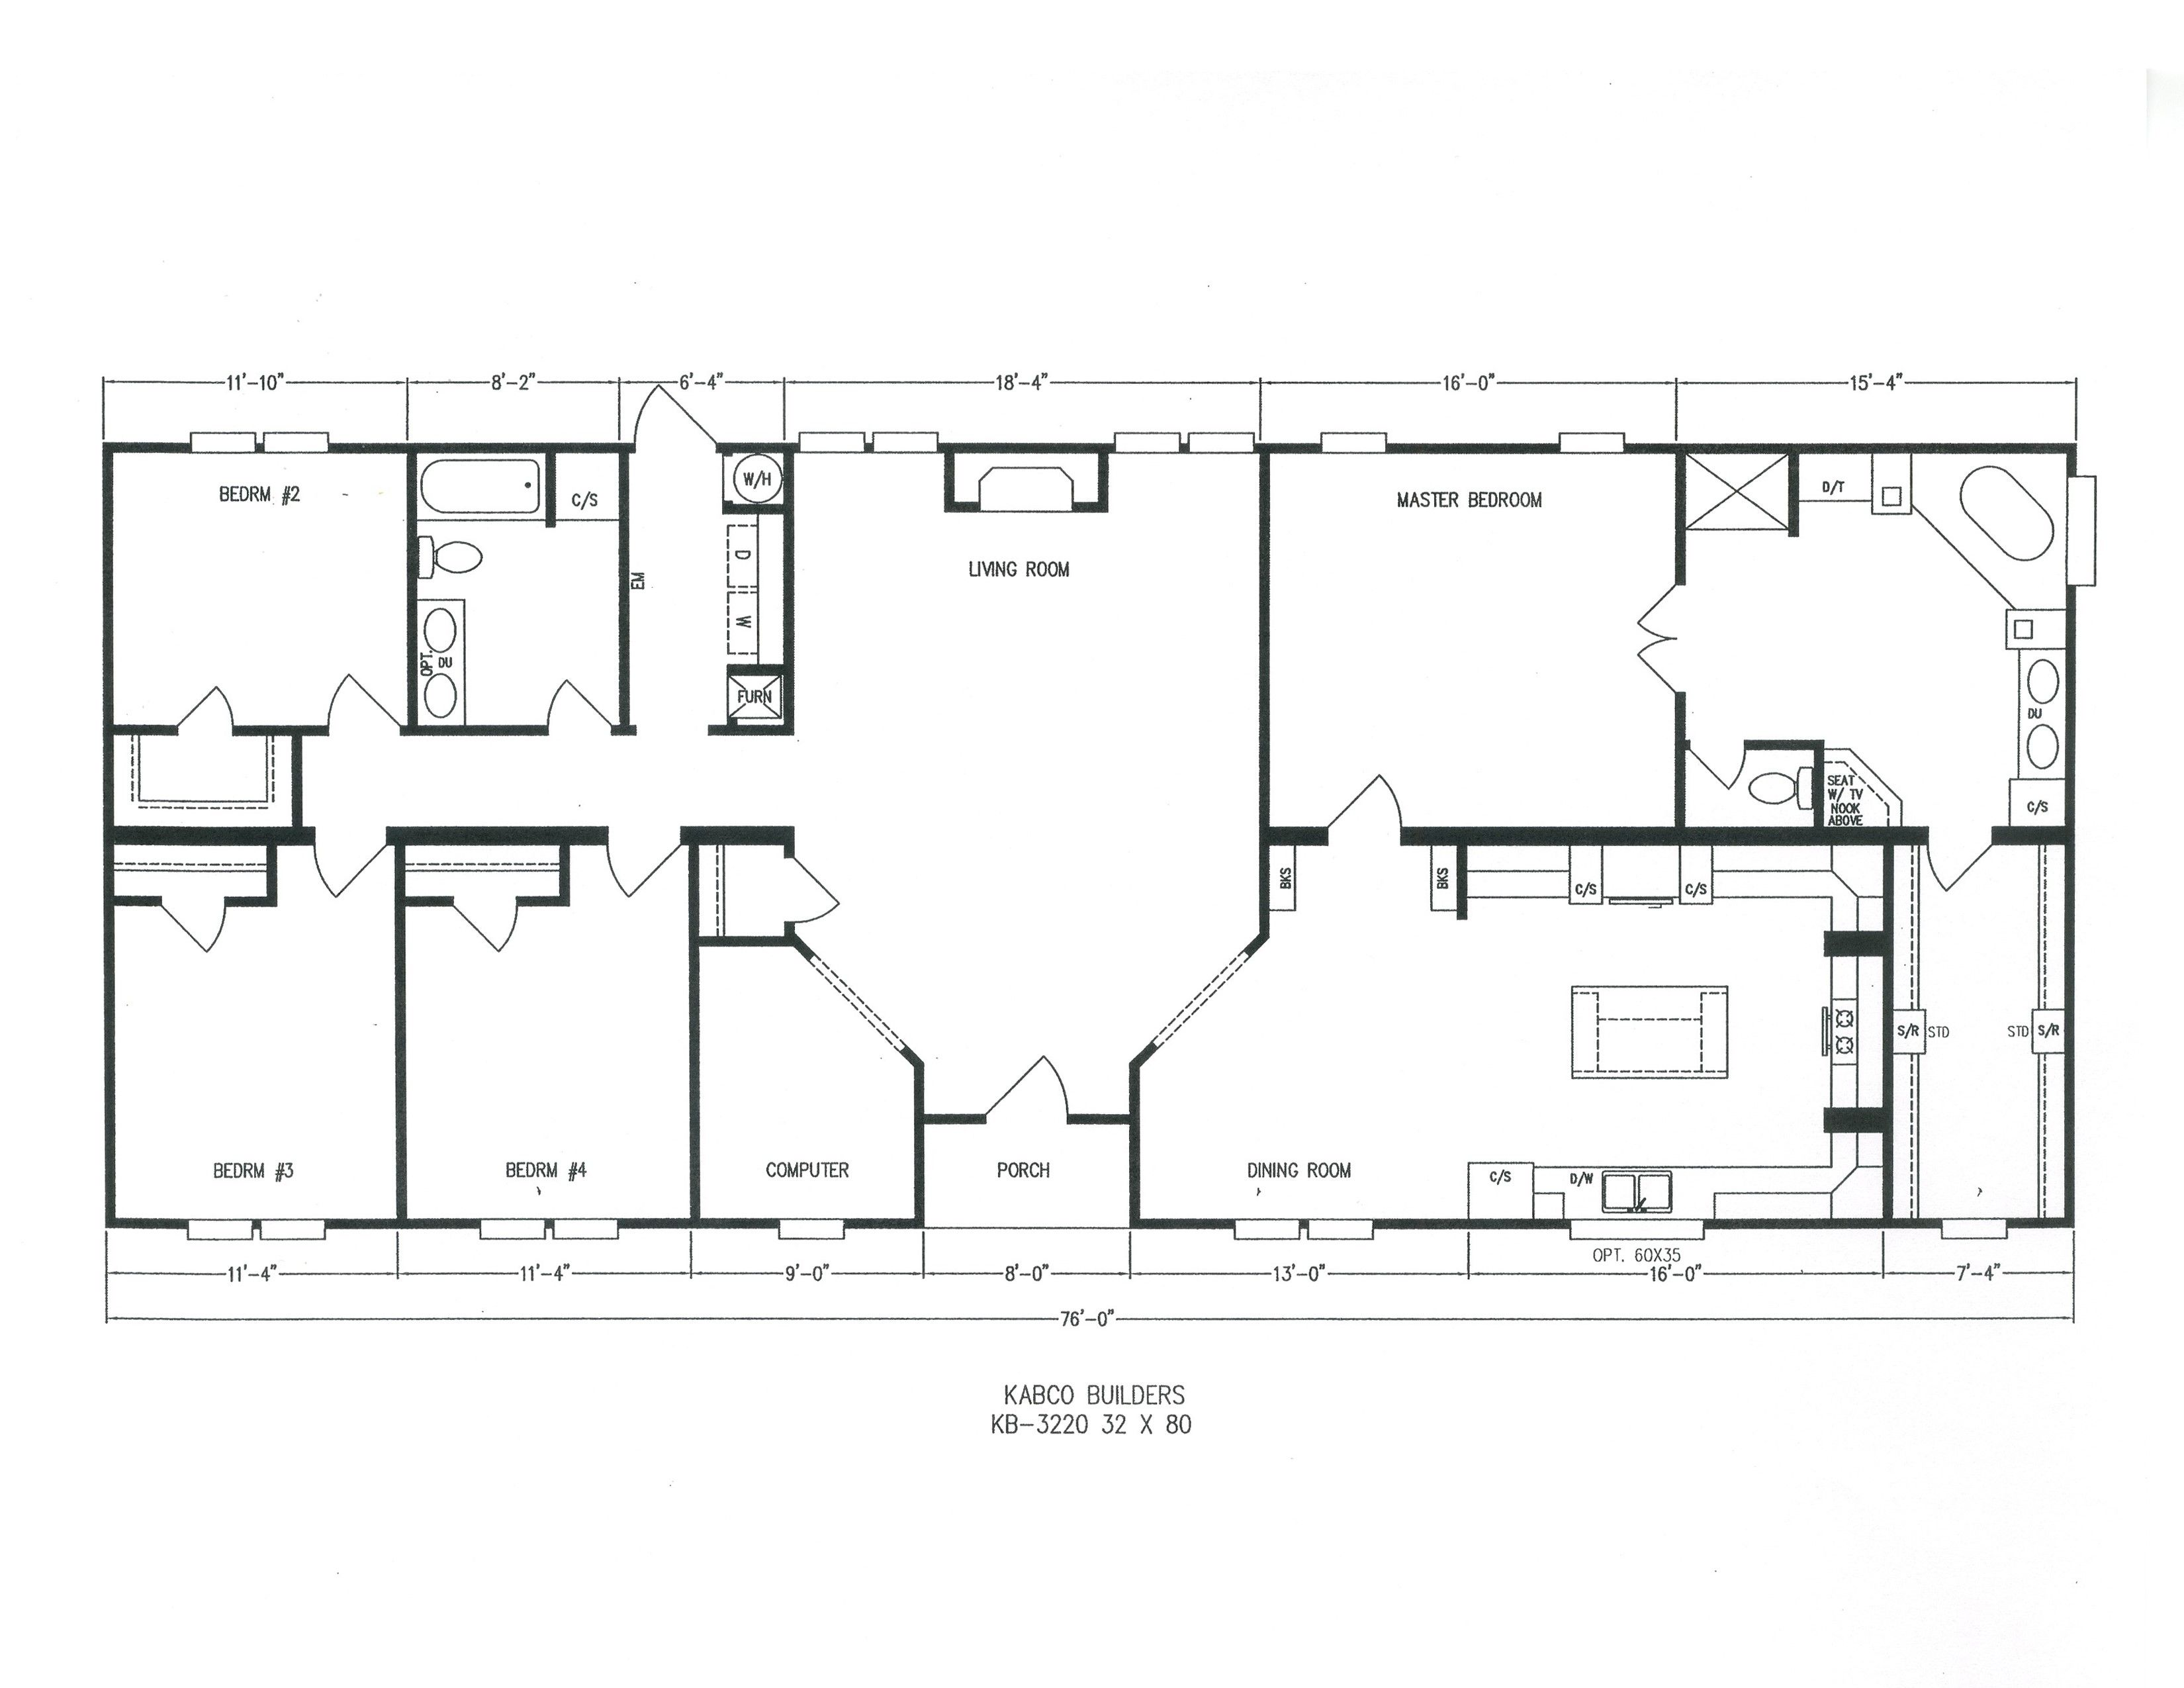 Kabco builders homes pinterest story house house for 6 bedroom double wide